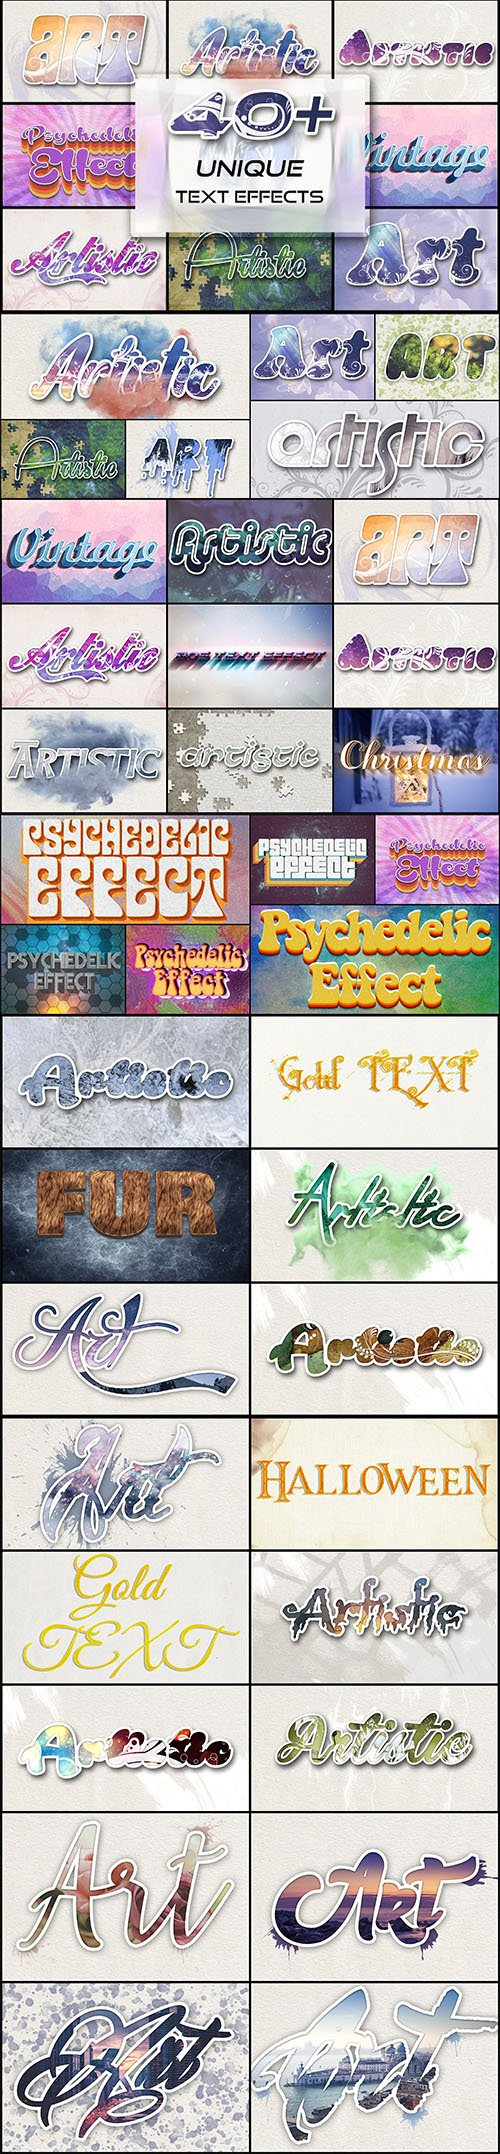 CreativeMarket - 40+ Unique Text Effects To Trendify 3062797